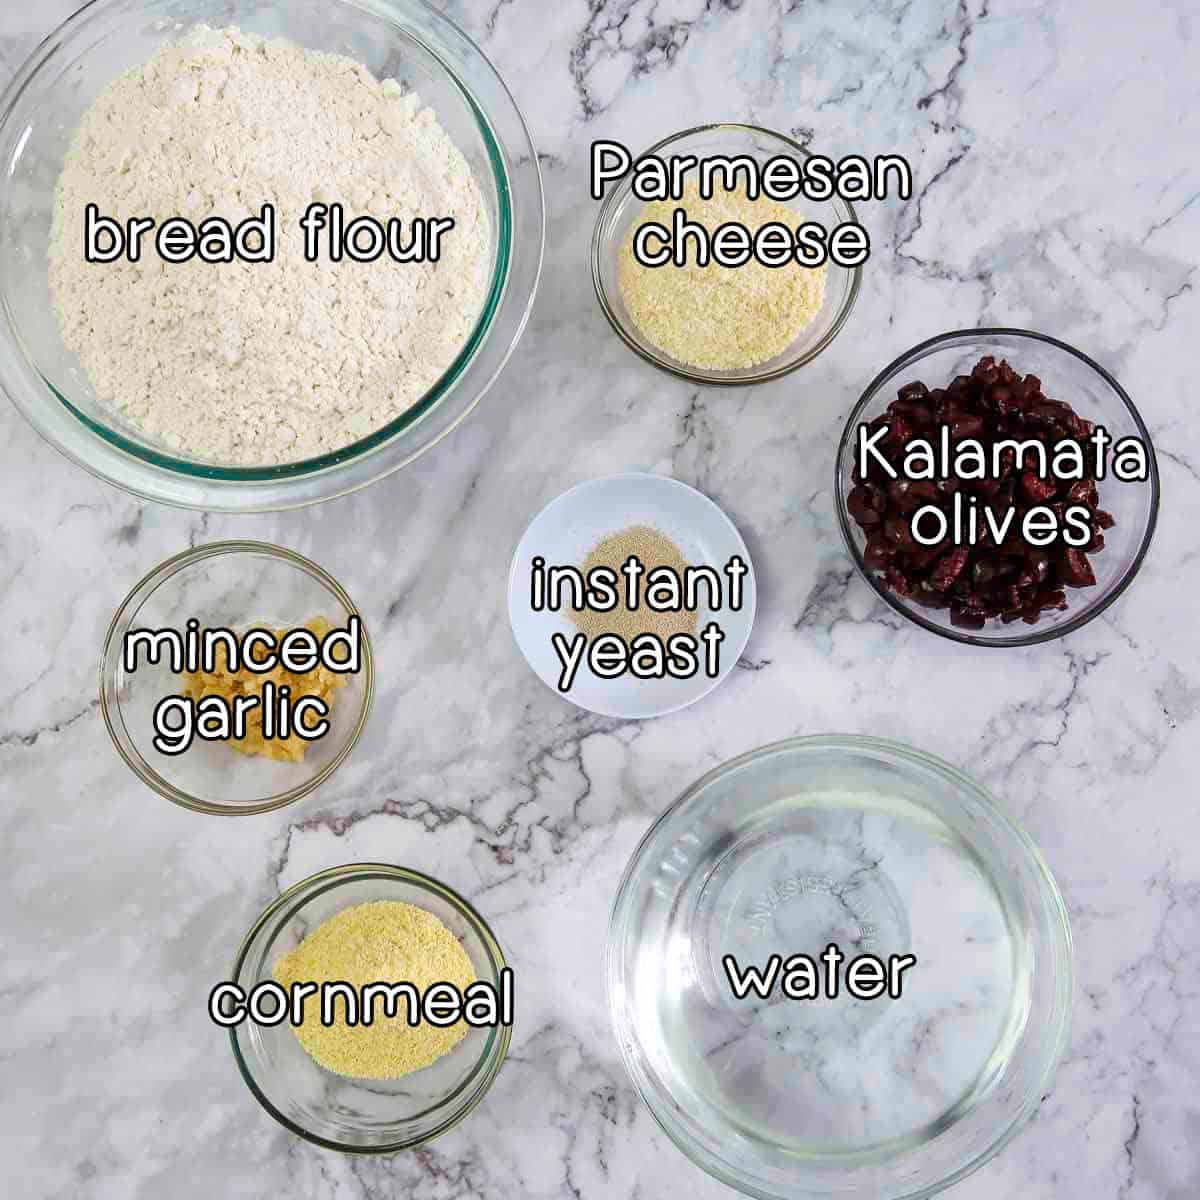 Overhead shot of ingredients- bread flour, parmesan cheese, Kalamata olives, instant yeast, minced garlic, cornmeal, and water.